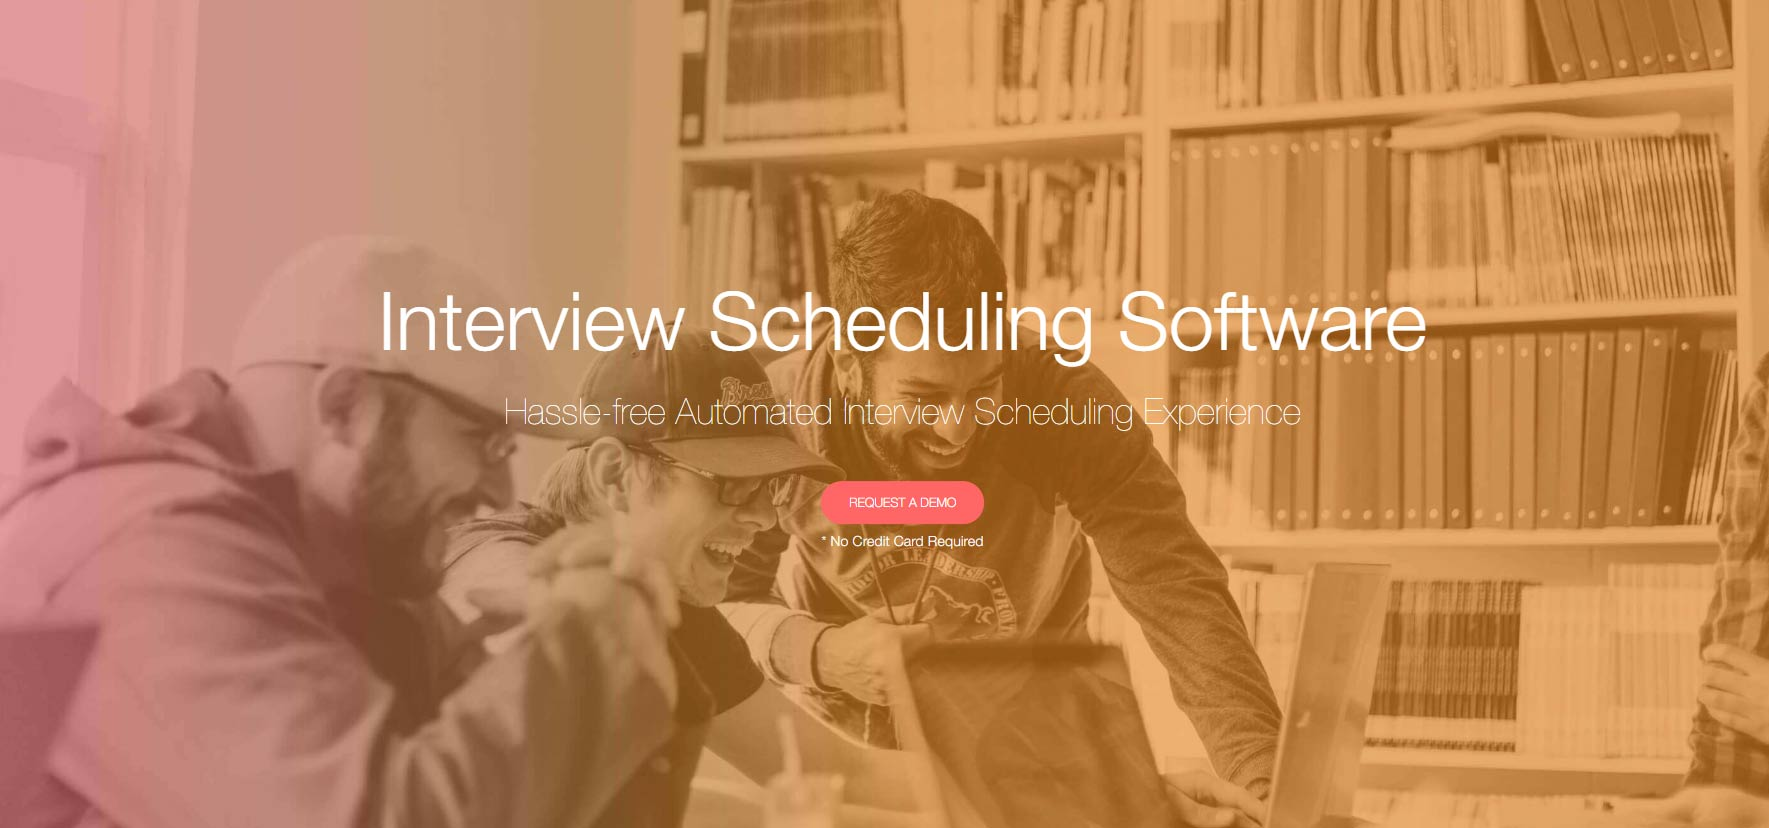 Rakuna interview scheduling software